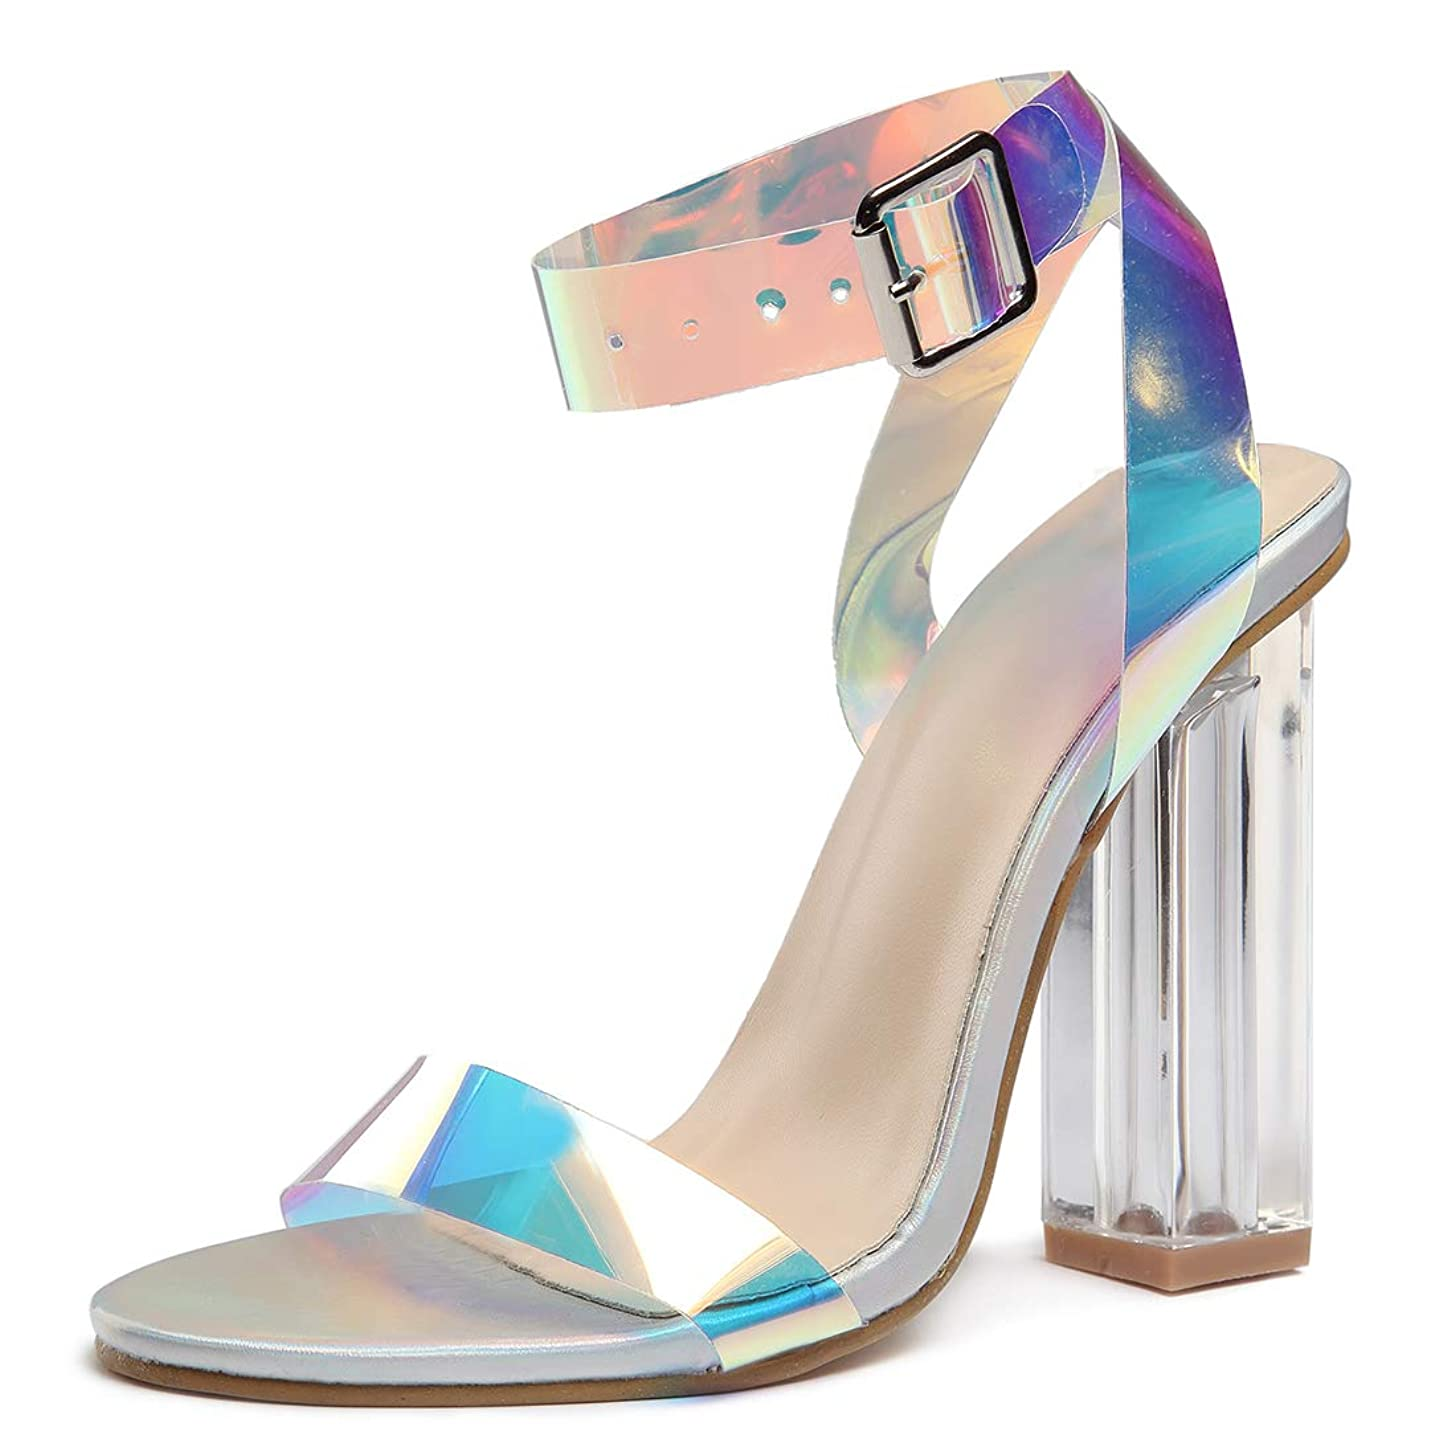 Women's High Heel Platform Dress Pump Sandals Ankle Strap Block Clear Chunky Heels Party Shoes